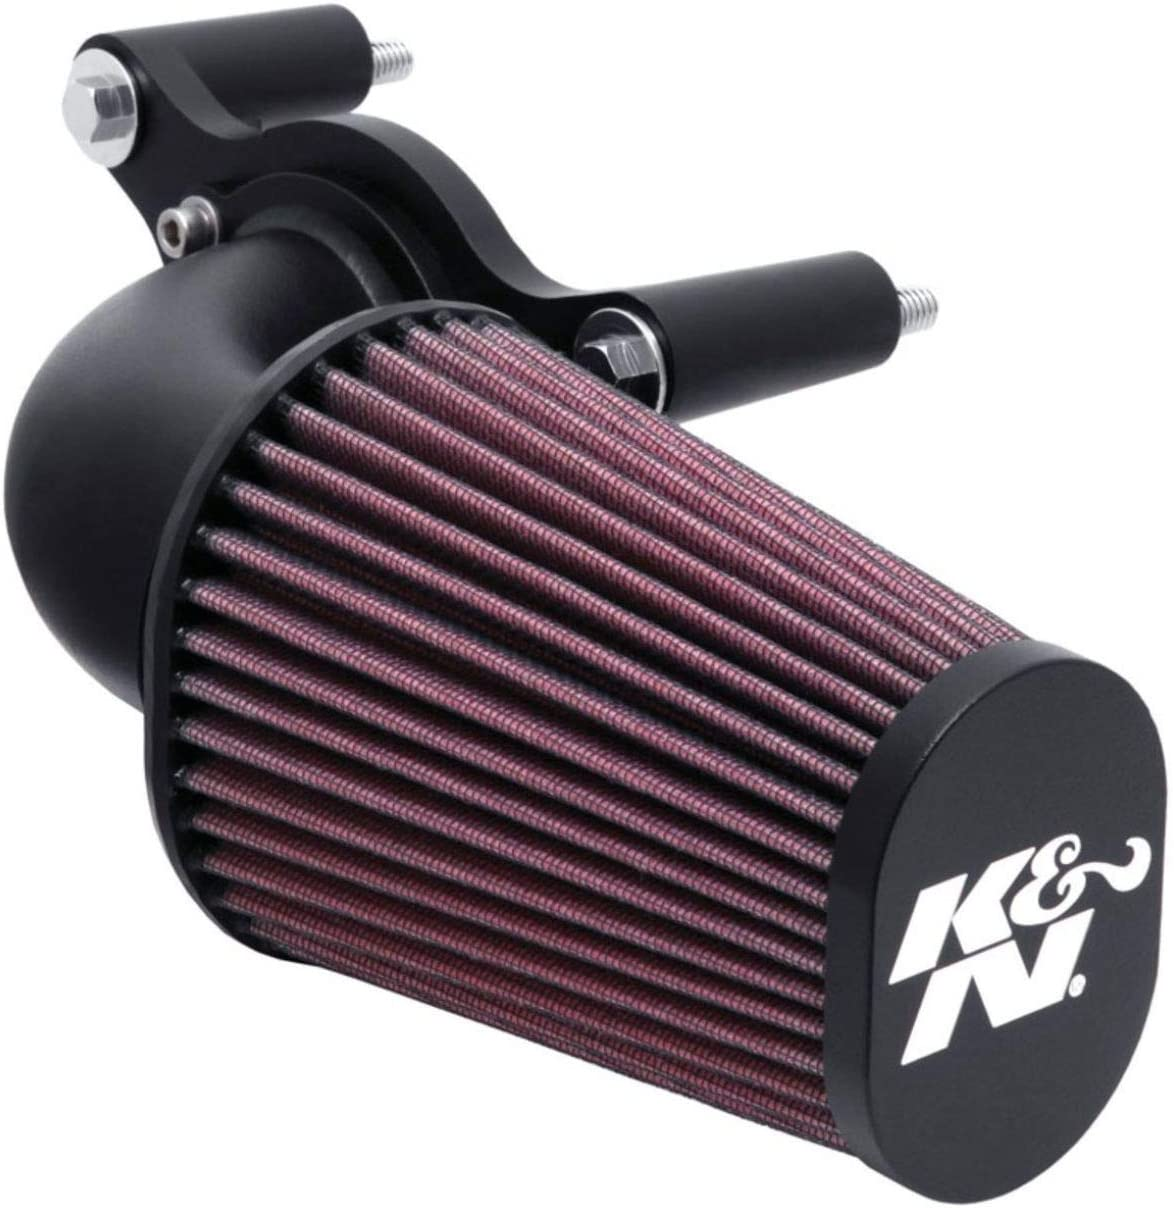 K&N 63-1125 Performance Intake Kit